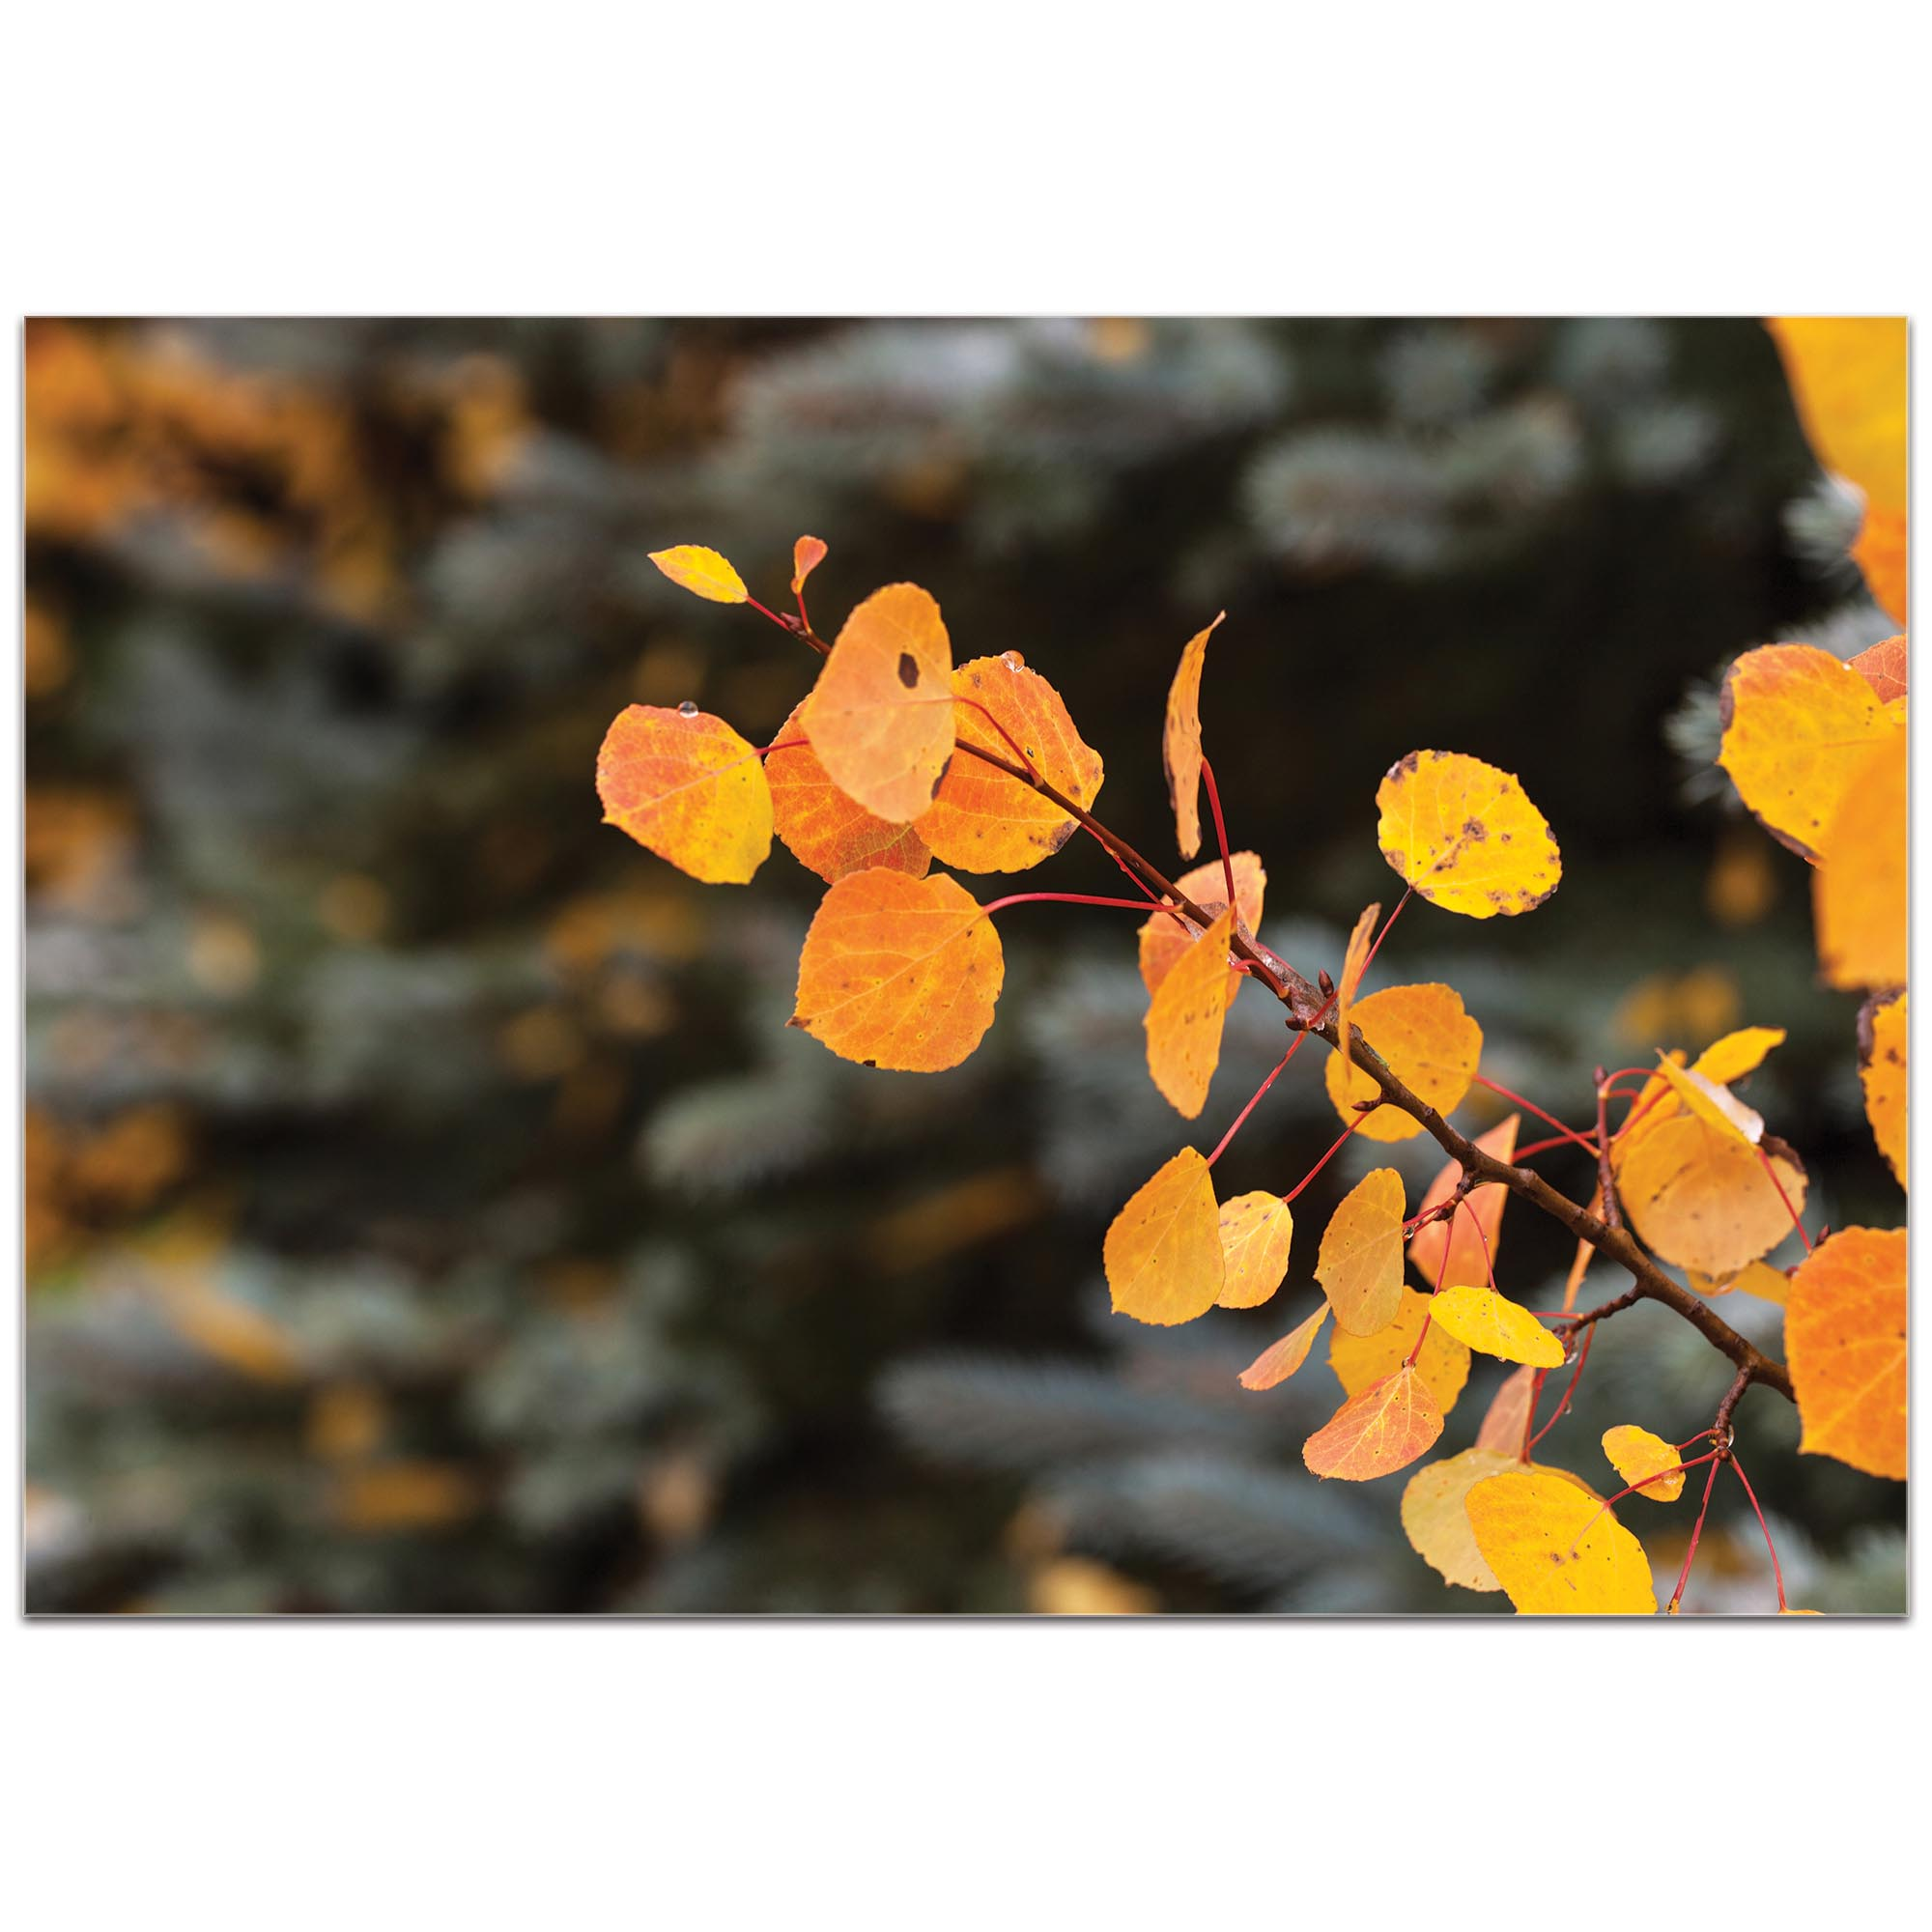 Nature Photography 'Autumn Branch' - Autumn Leaves Art on Metal or Plexiglass - Image 2